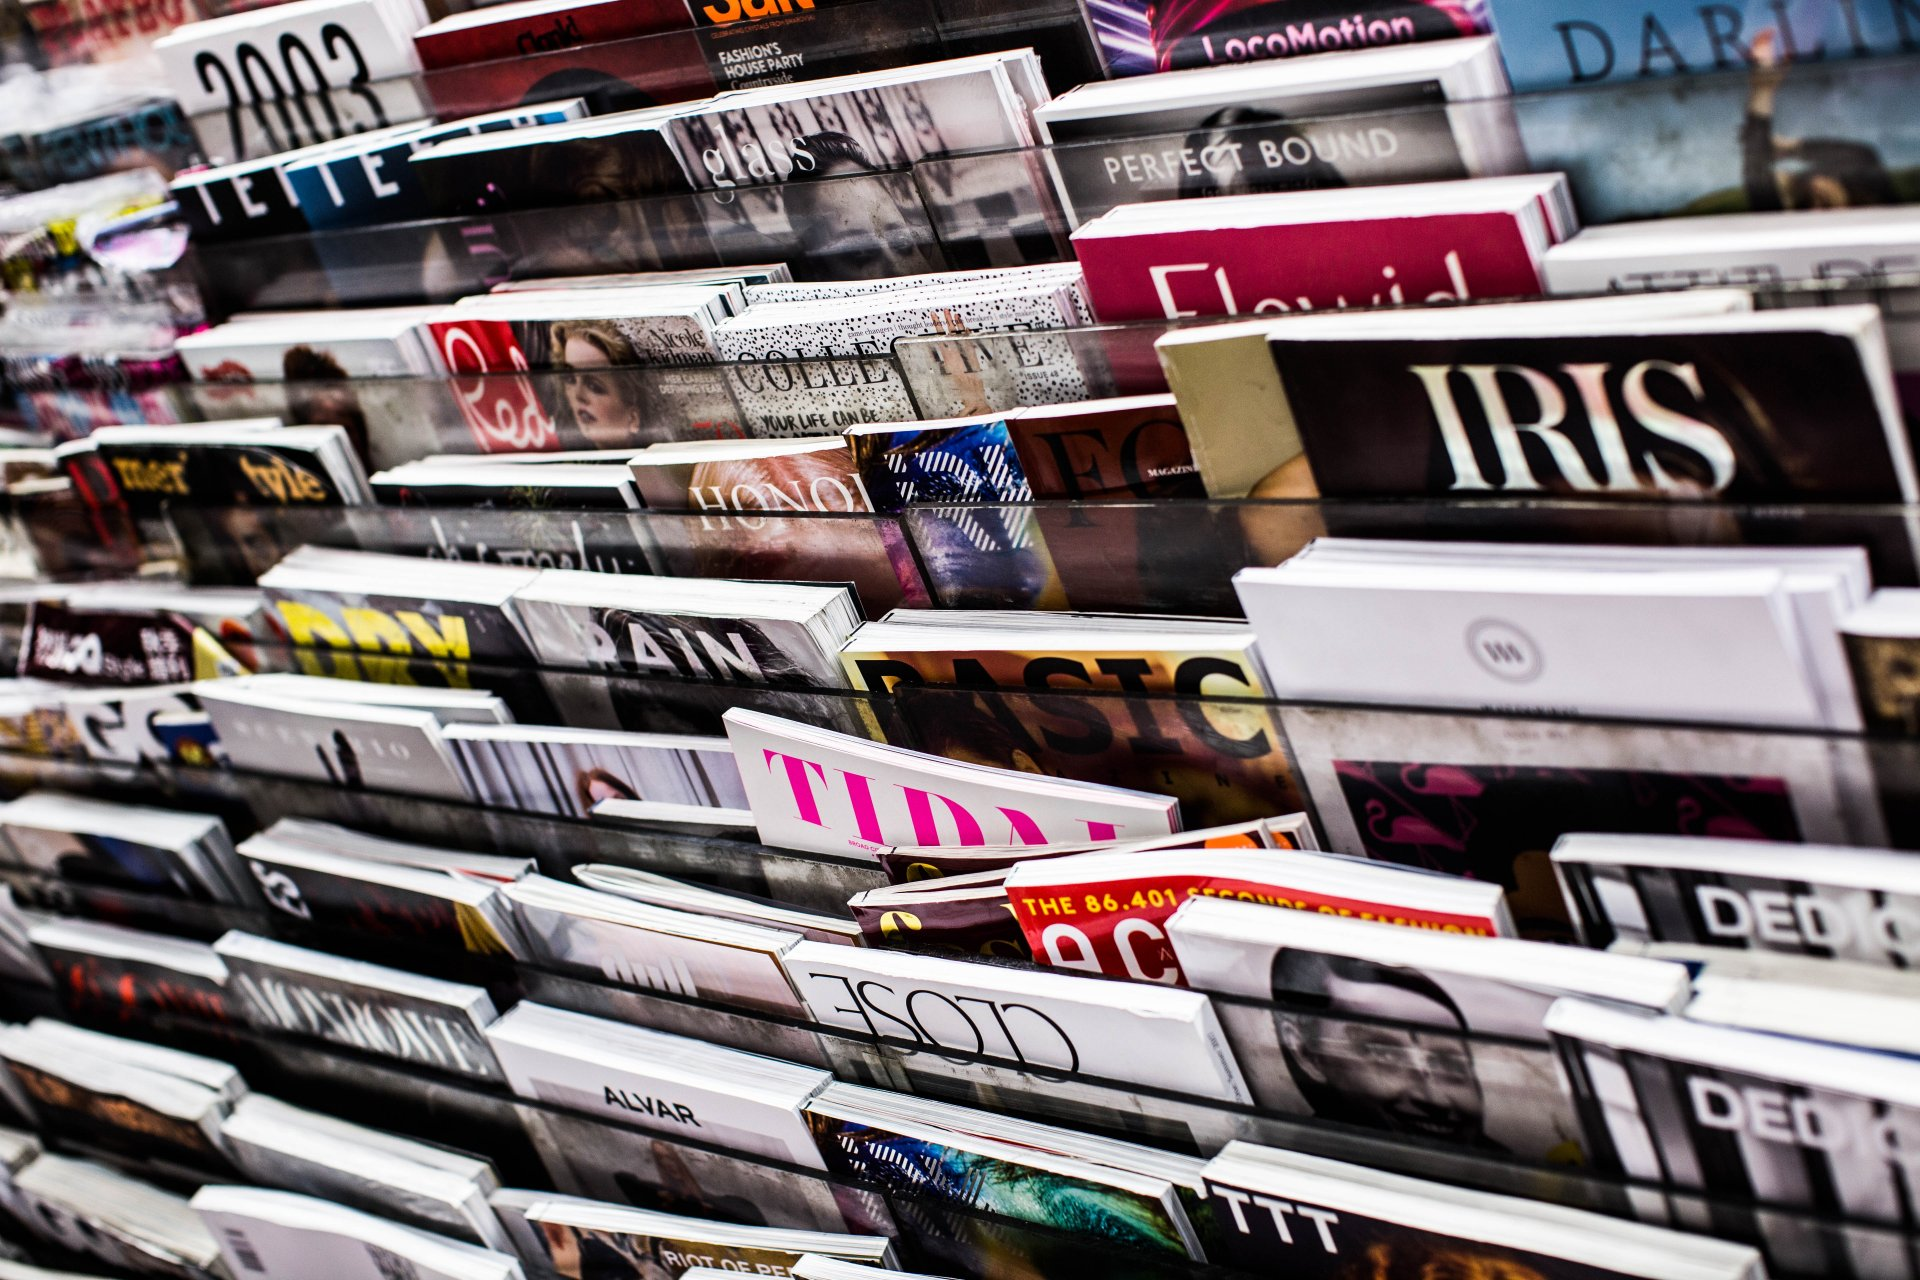 Magazines on a stand